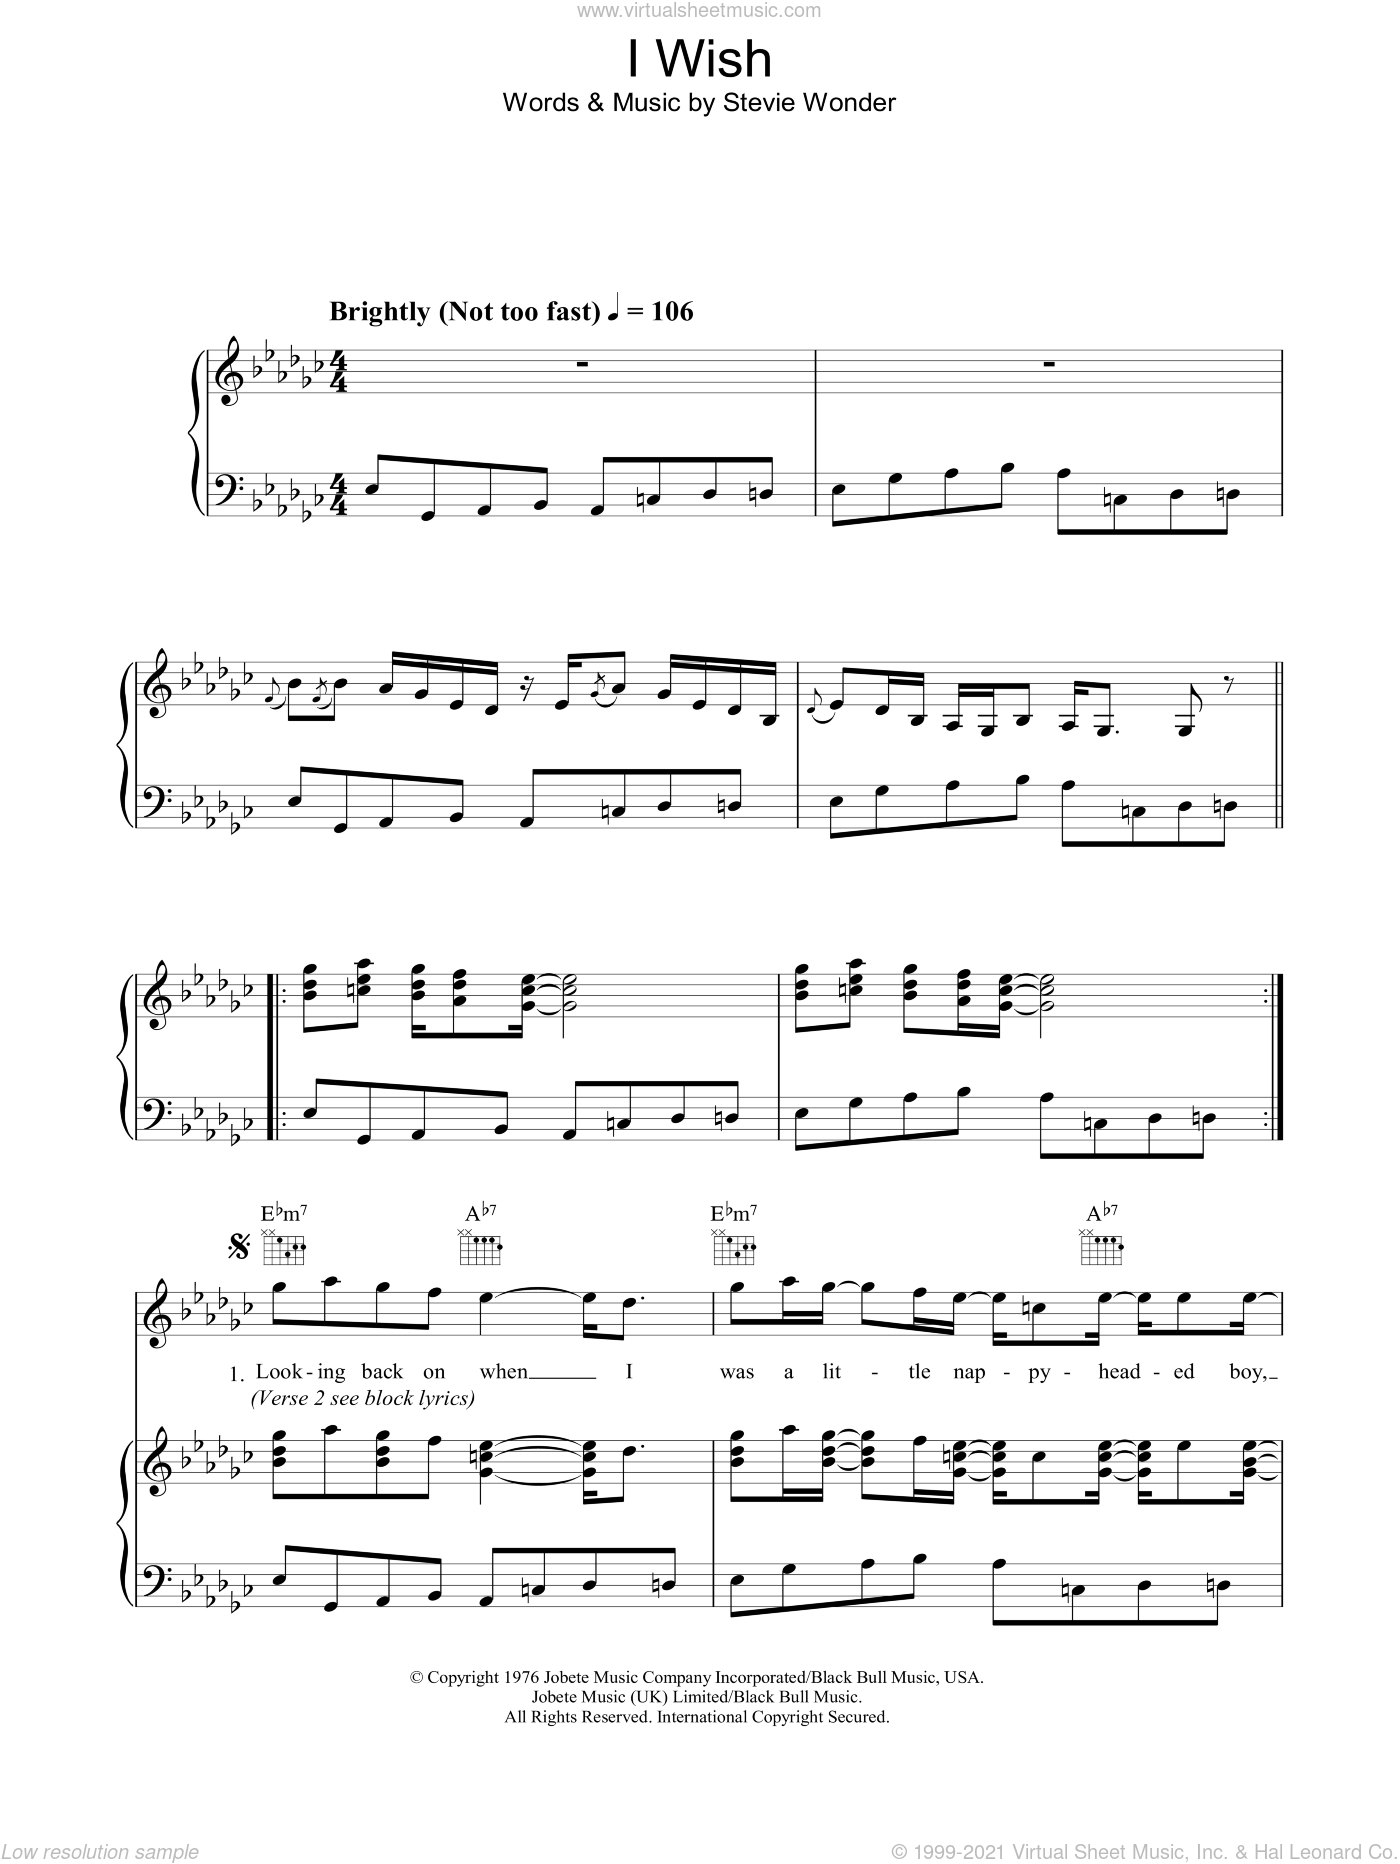 I Wish sheet music for voice, piano or guitar by Stevie Wonder. Score Image Preview.